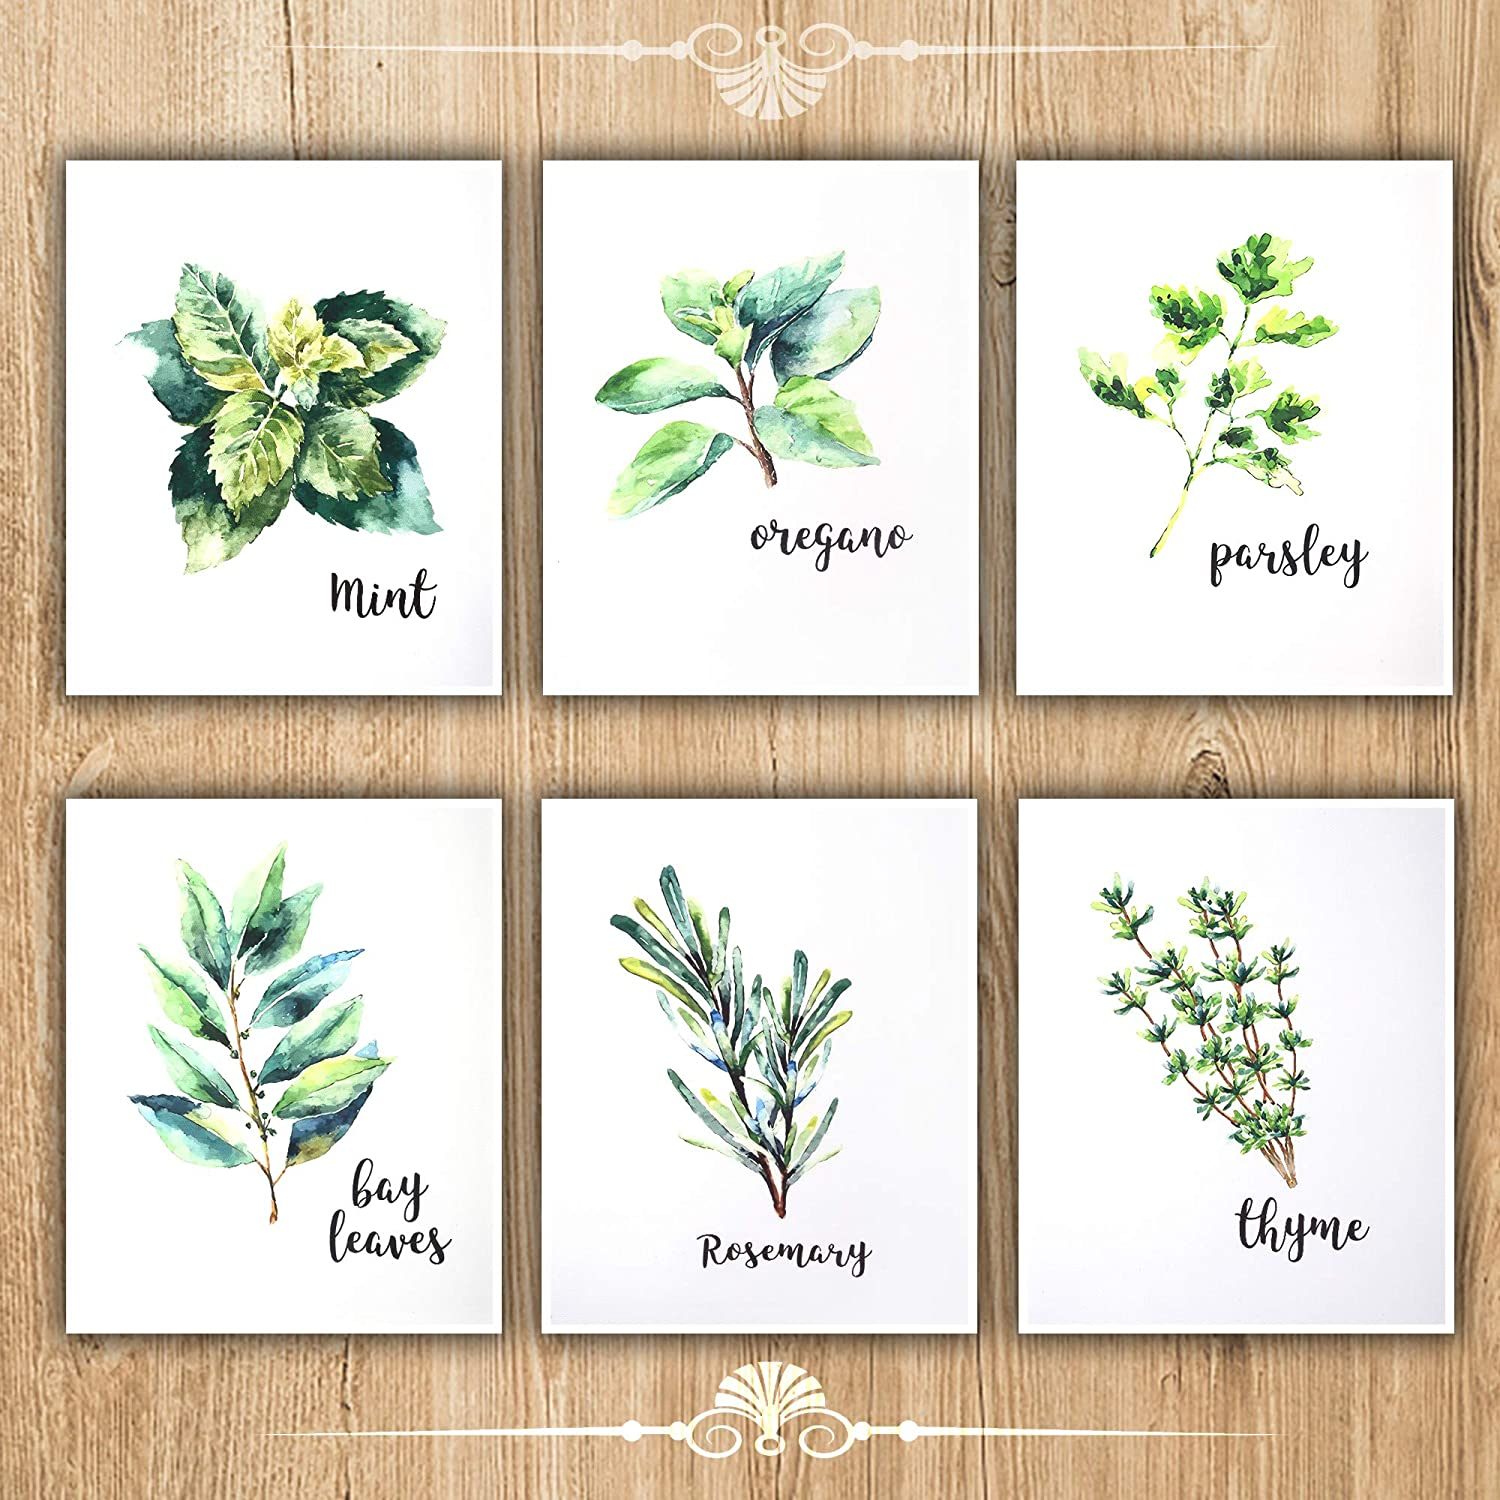 FELIMAI Kitchen Herbs Art Prints,Canvas Prints Wall Art,Canvas Art Set, 12x16s of 6,Unframed Wall Art Prints Wall Decor.